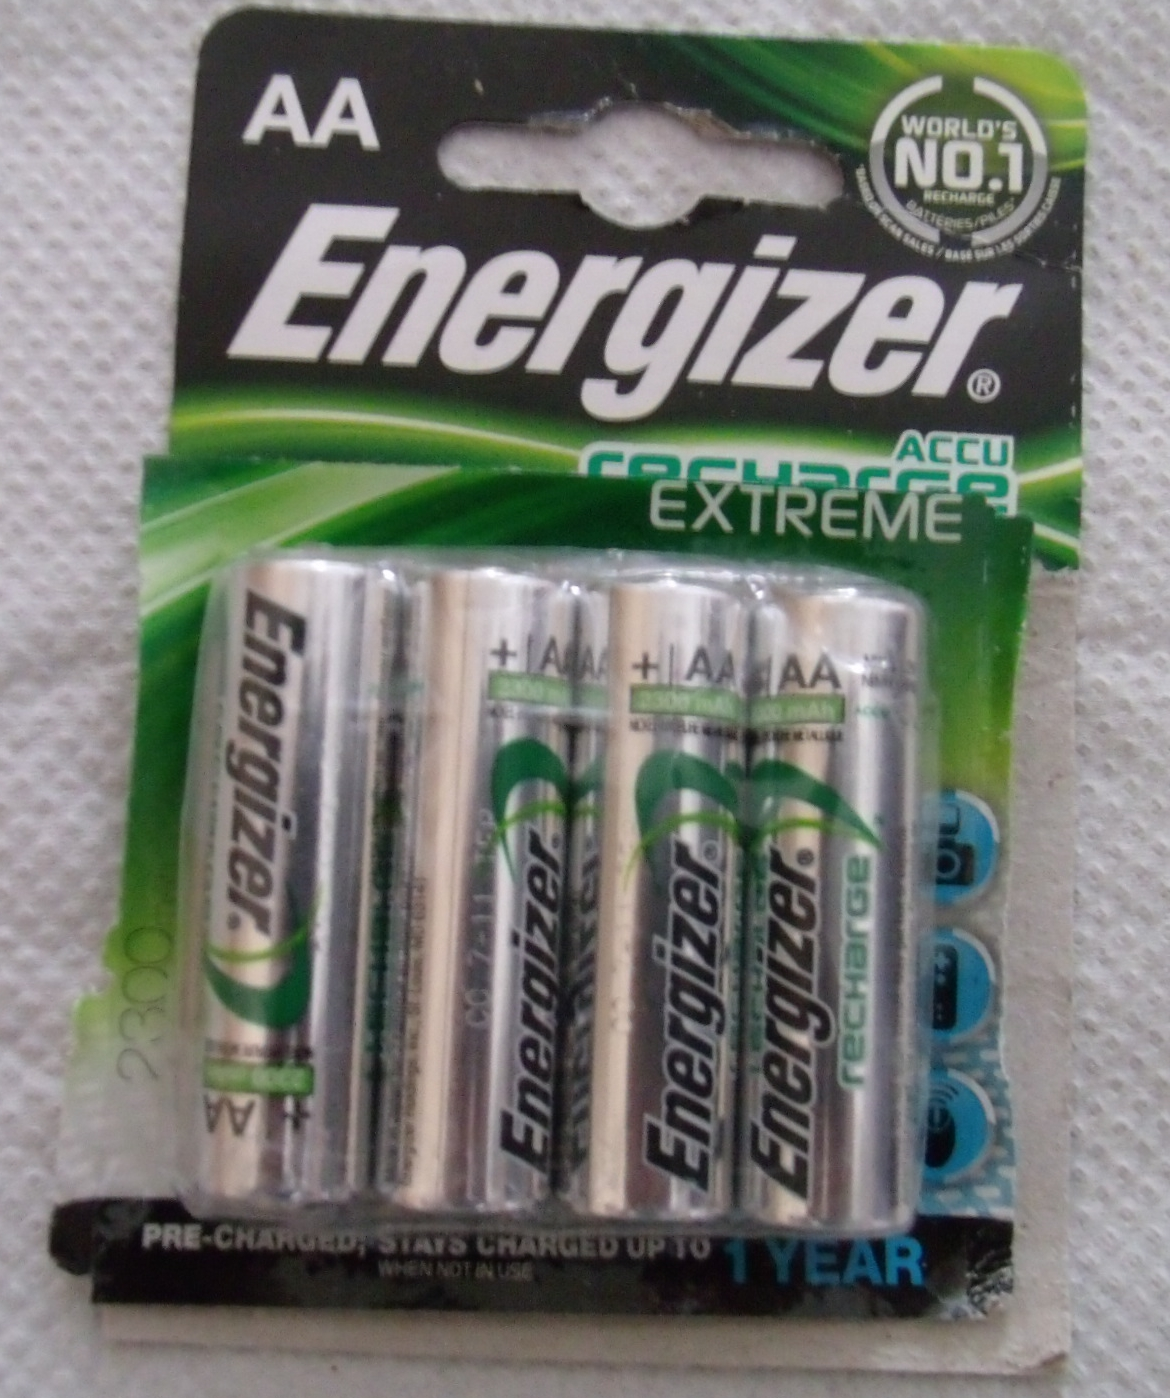 Accu Rechargeable Britwise I Bought Energizer Aa Accu Recharge Extreme 2300mih 4